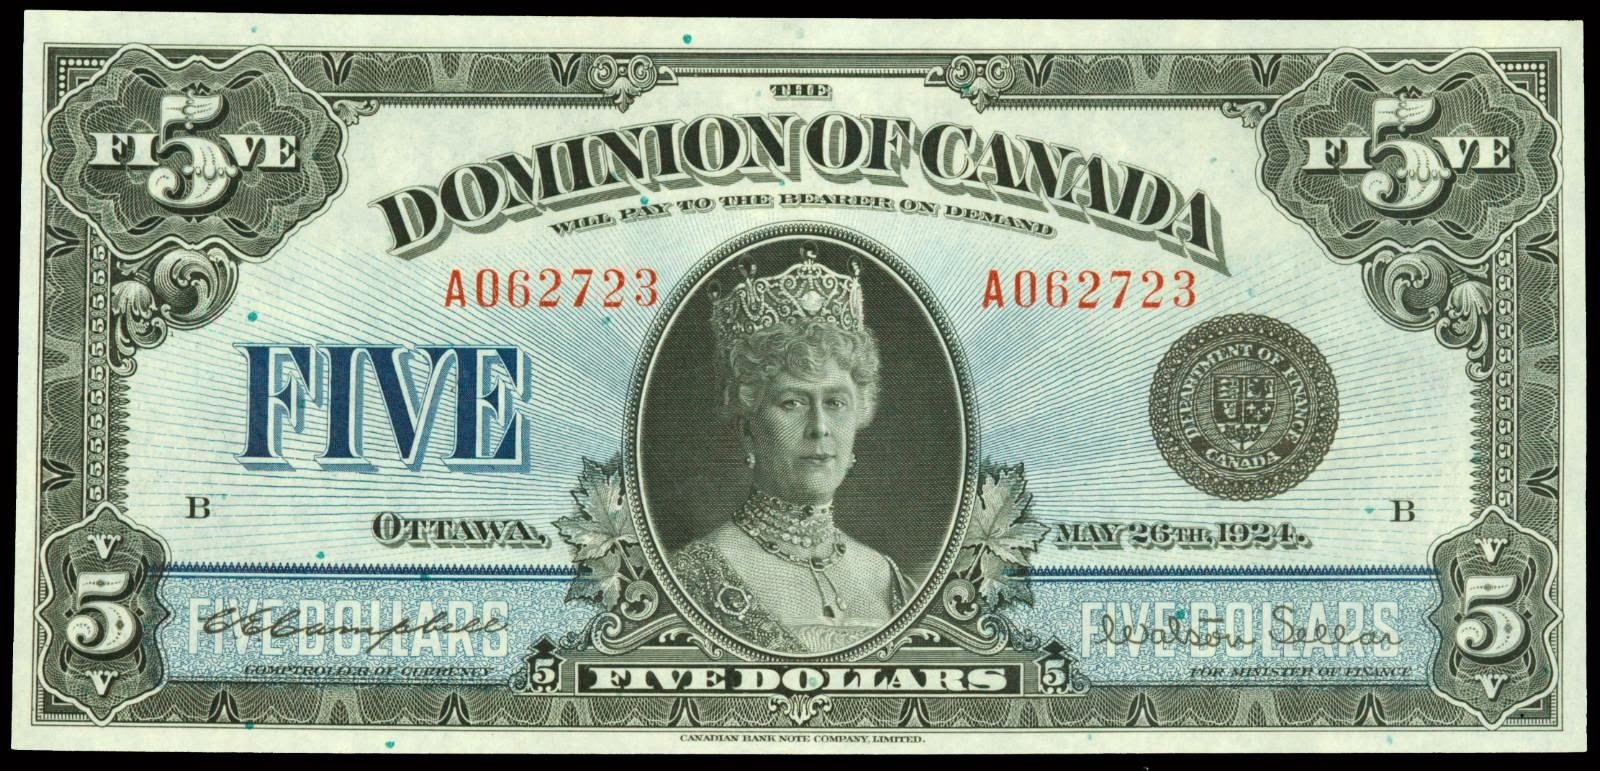 Dominion of Canada 5 Dollars banknote 1924 Queen Mary